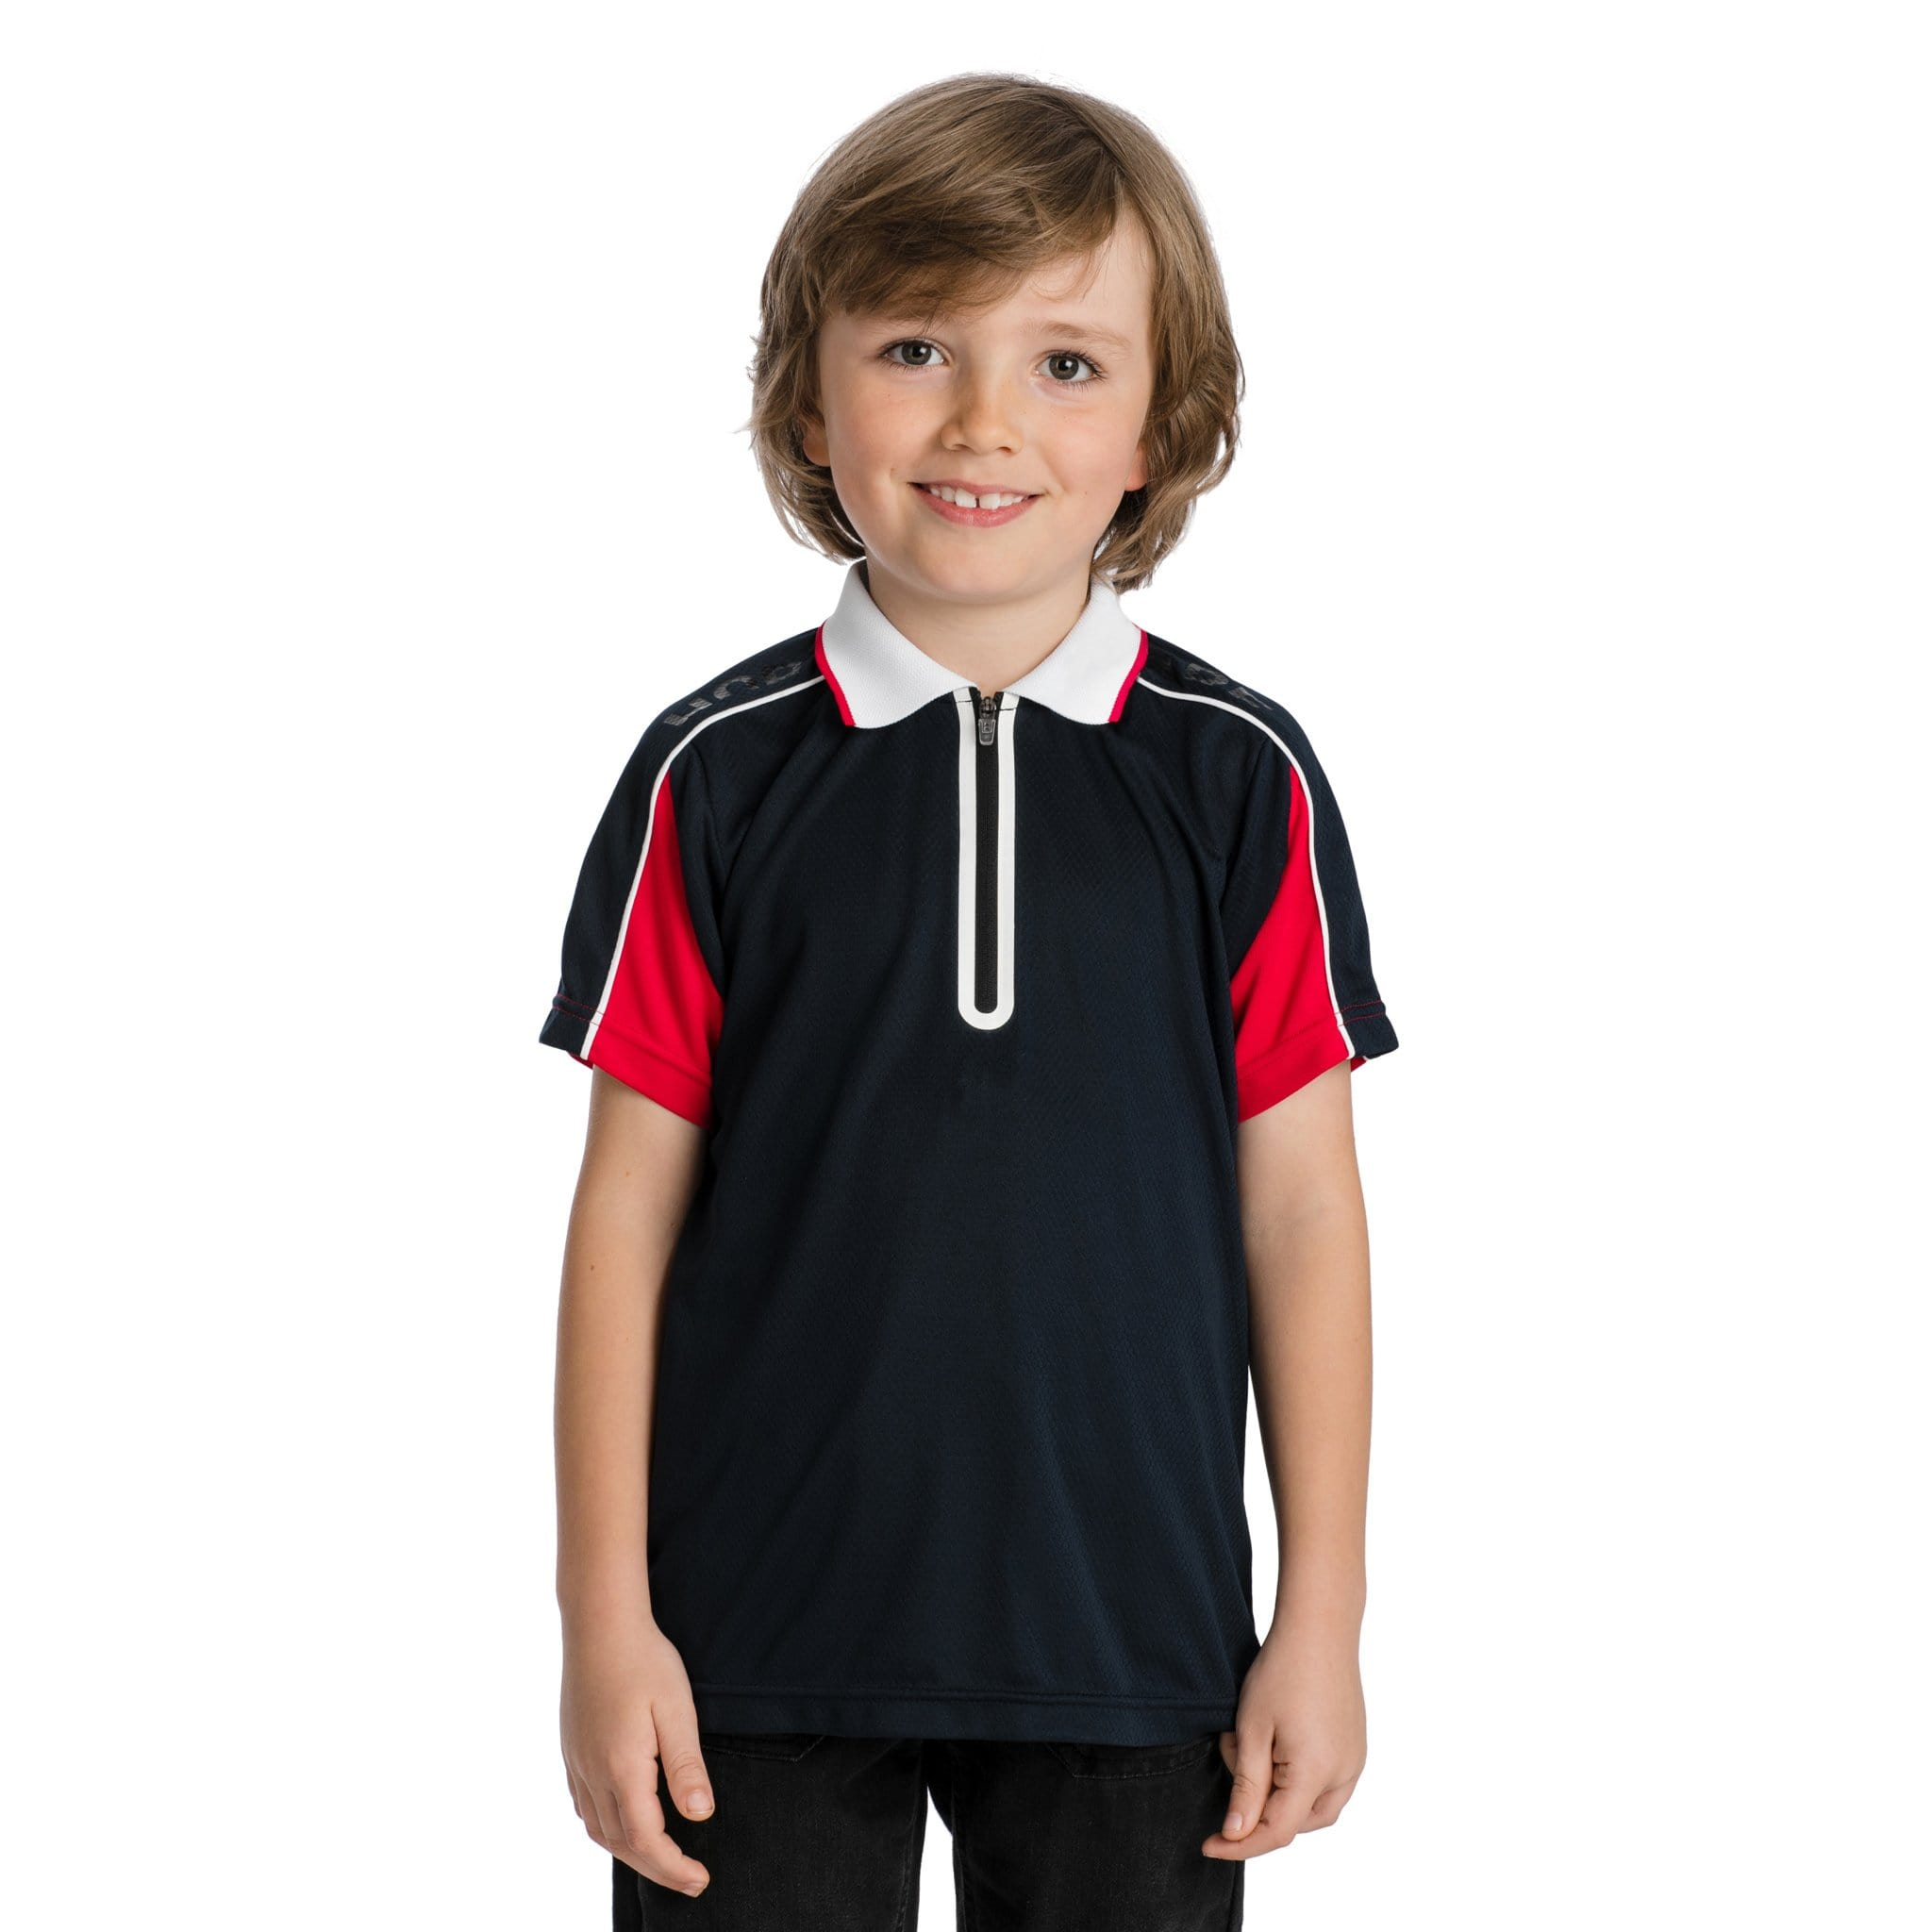 Horseware Boy's Technical Polo Shirt CJHPH9 Navy and Red Front